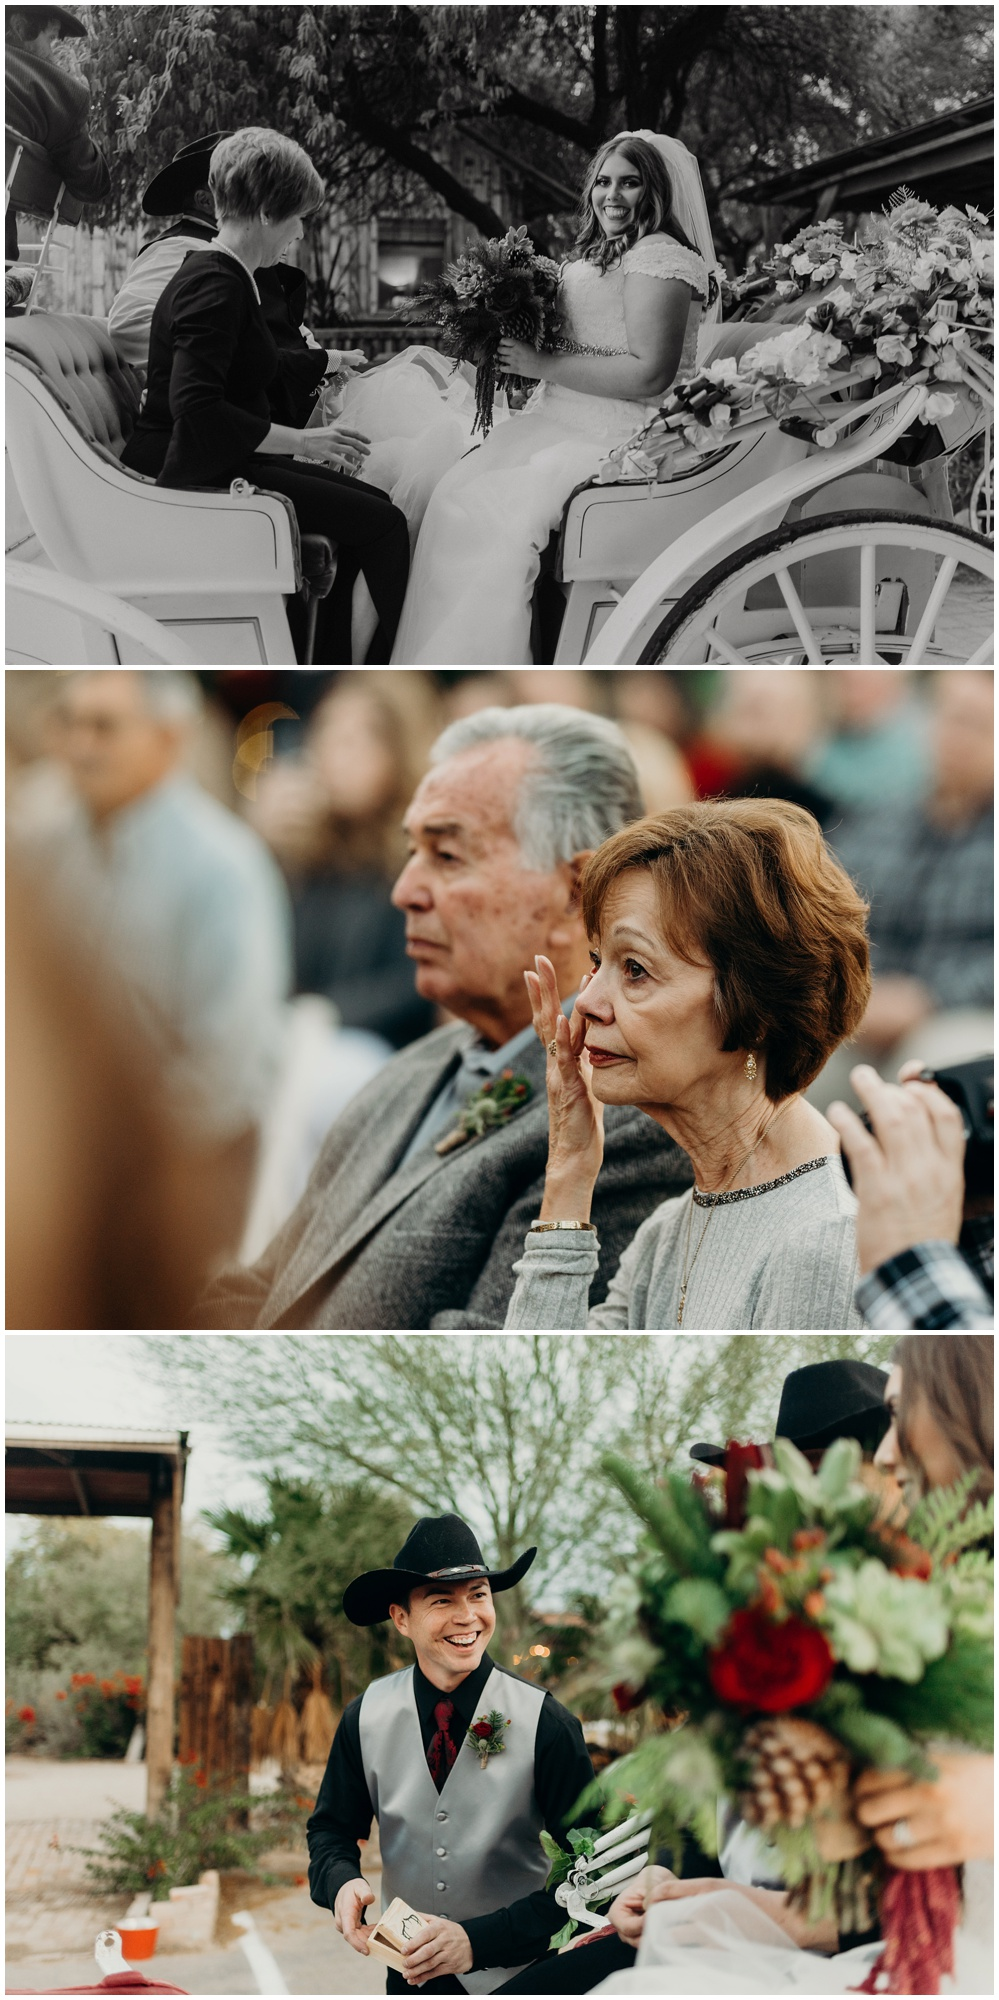 Genuine and authentic moments documented for a Christmas Country Wedding at the Windmill Winery.